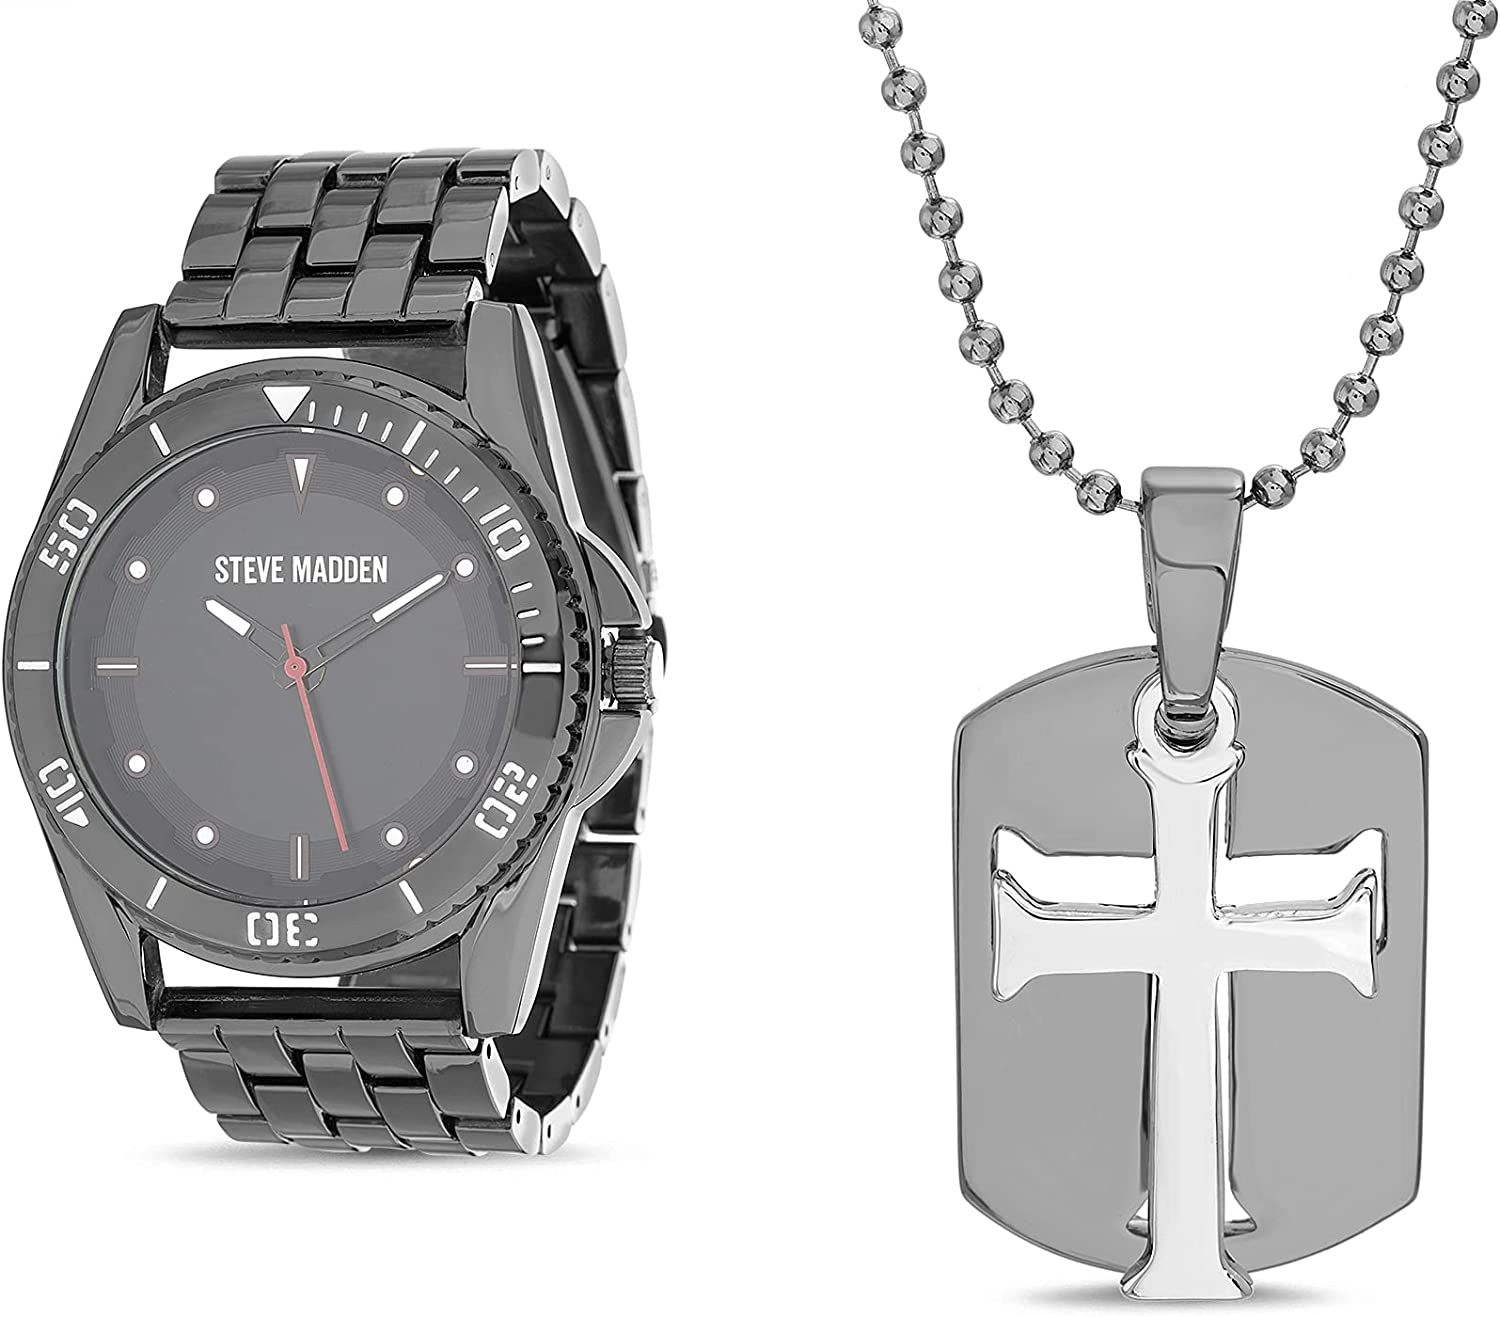 Steve Madden Link Watch Directly Max 79% OFF managed store Dog Tag Necklace Pendant Two Men Pie for